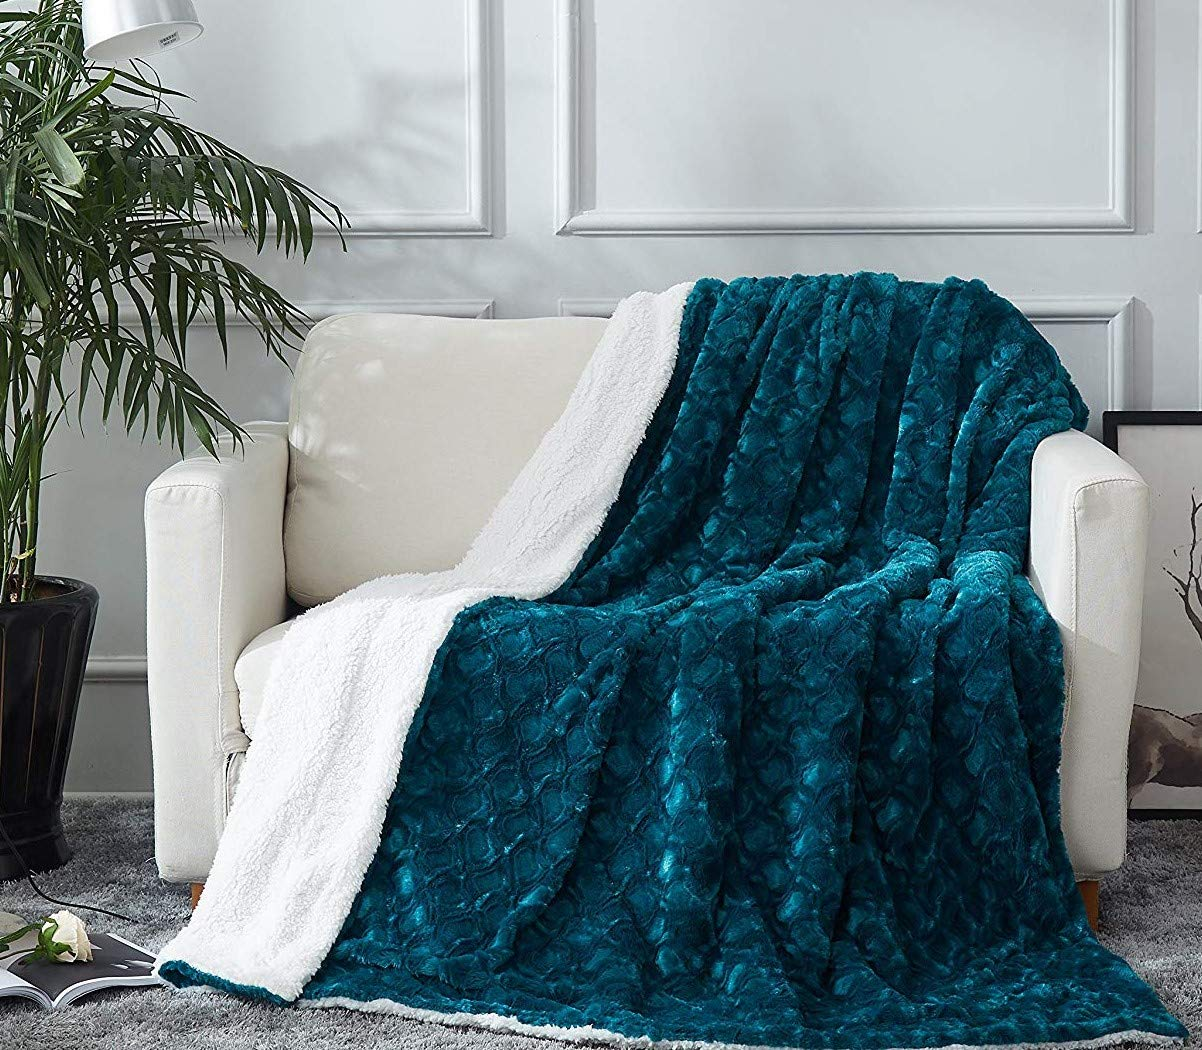 """DaDa Bedding Lavish Throw Blanket - Ruched Mermaid Scales Faux Fur Sherpa - Soft Warm Plush Fleece Textured - Bright Vibrant Embossed Green Blue Teal & White - 63"""" x 90"""""""